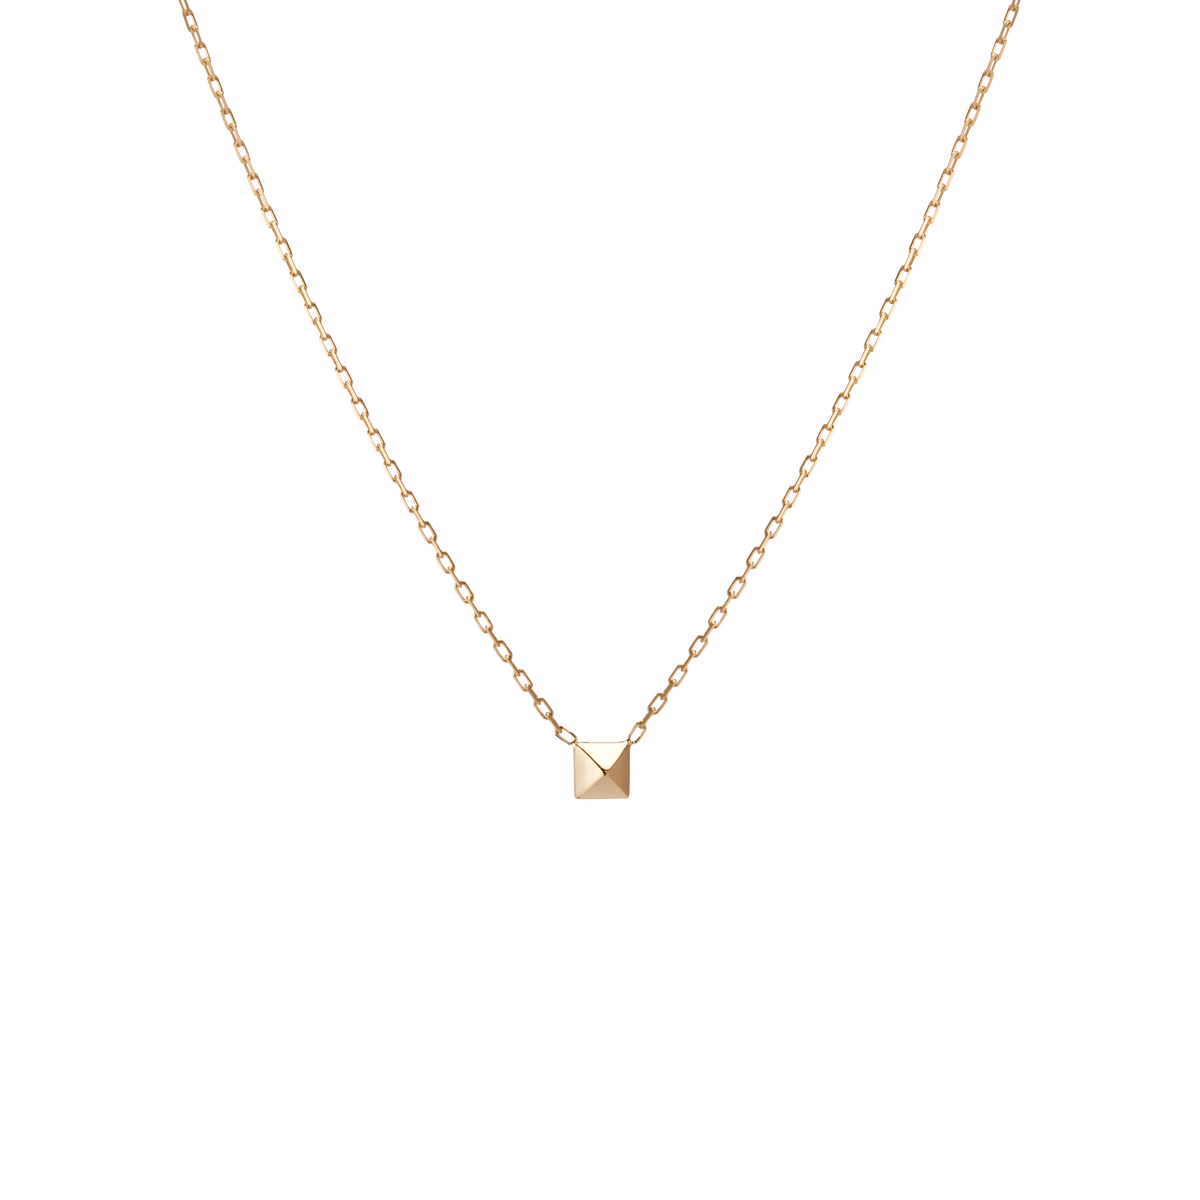 Made in USA 18K Yellow Gold I Love You Pendant JEWELS OBSESSION 18K I Love You Pendant